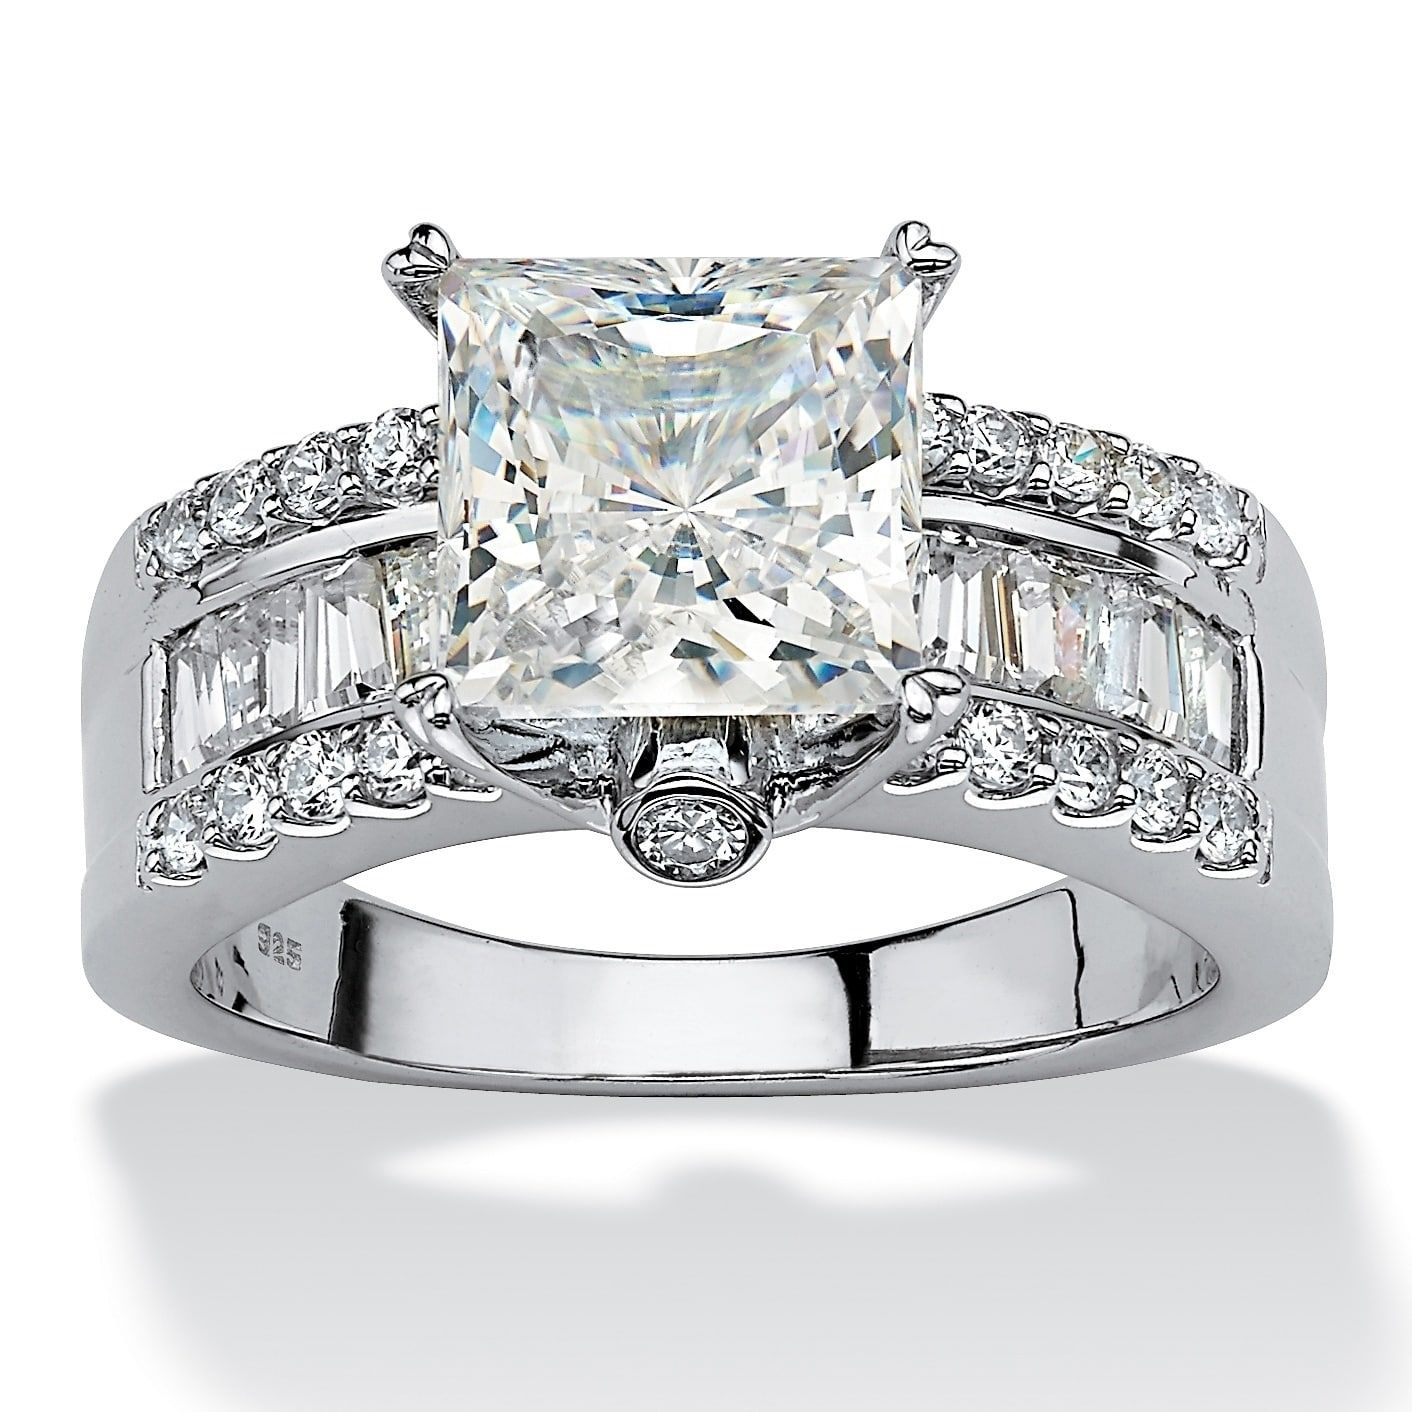 Platinum over Sterling Silver Cubic Zirconia Engagement